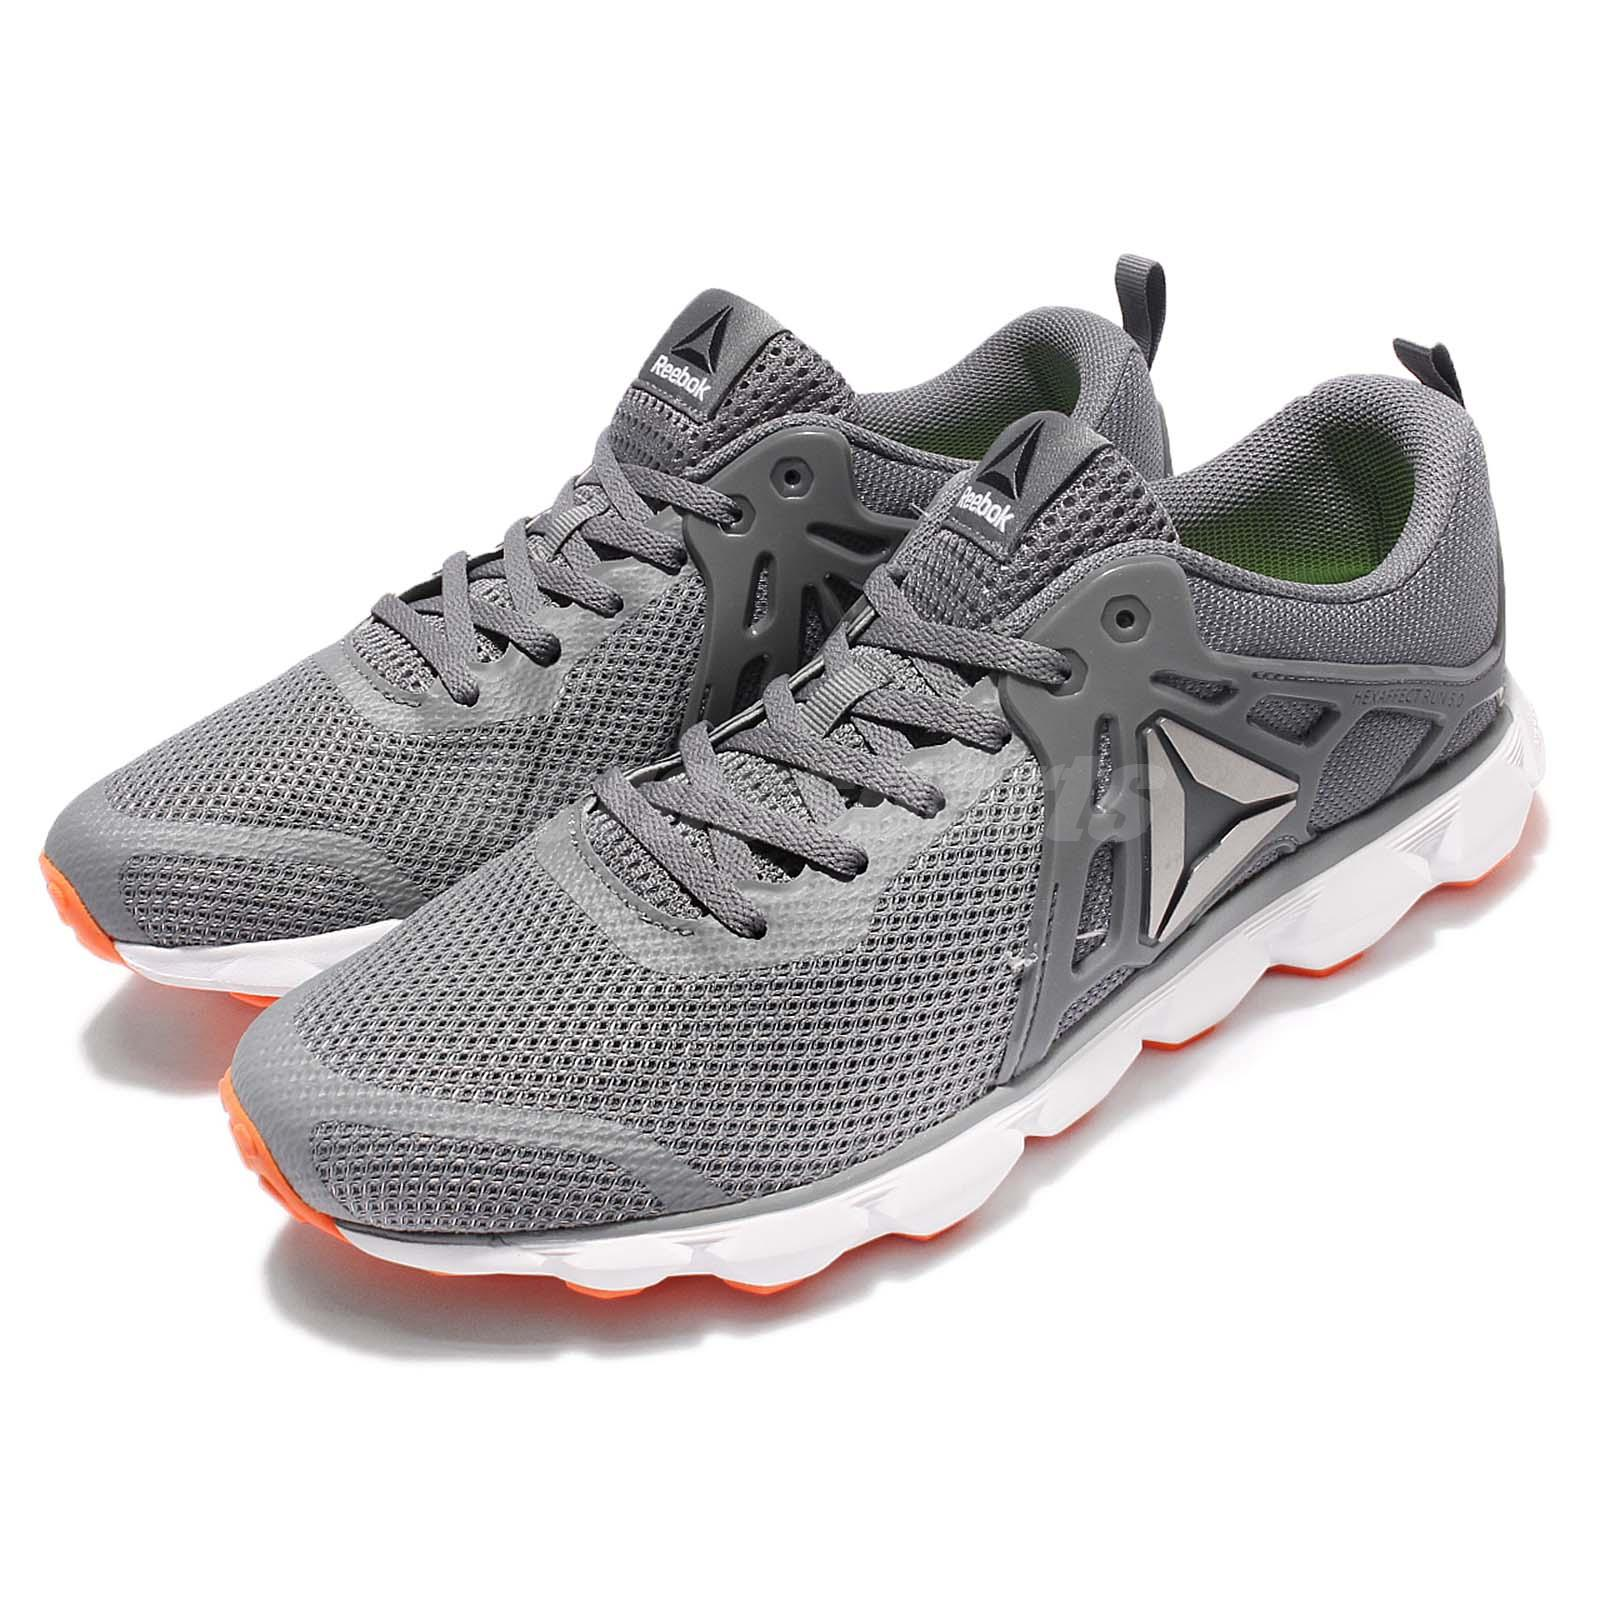 100% authentic f5614 ea7f4 Details about Reebok Hexaffect Run 5.0 MTM Grey Orange White Men Running  Shoes Sneakers BD4698